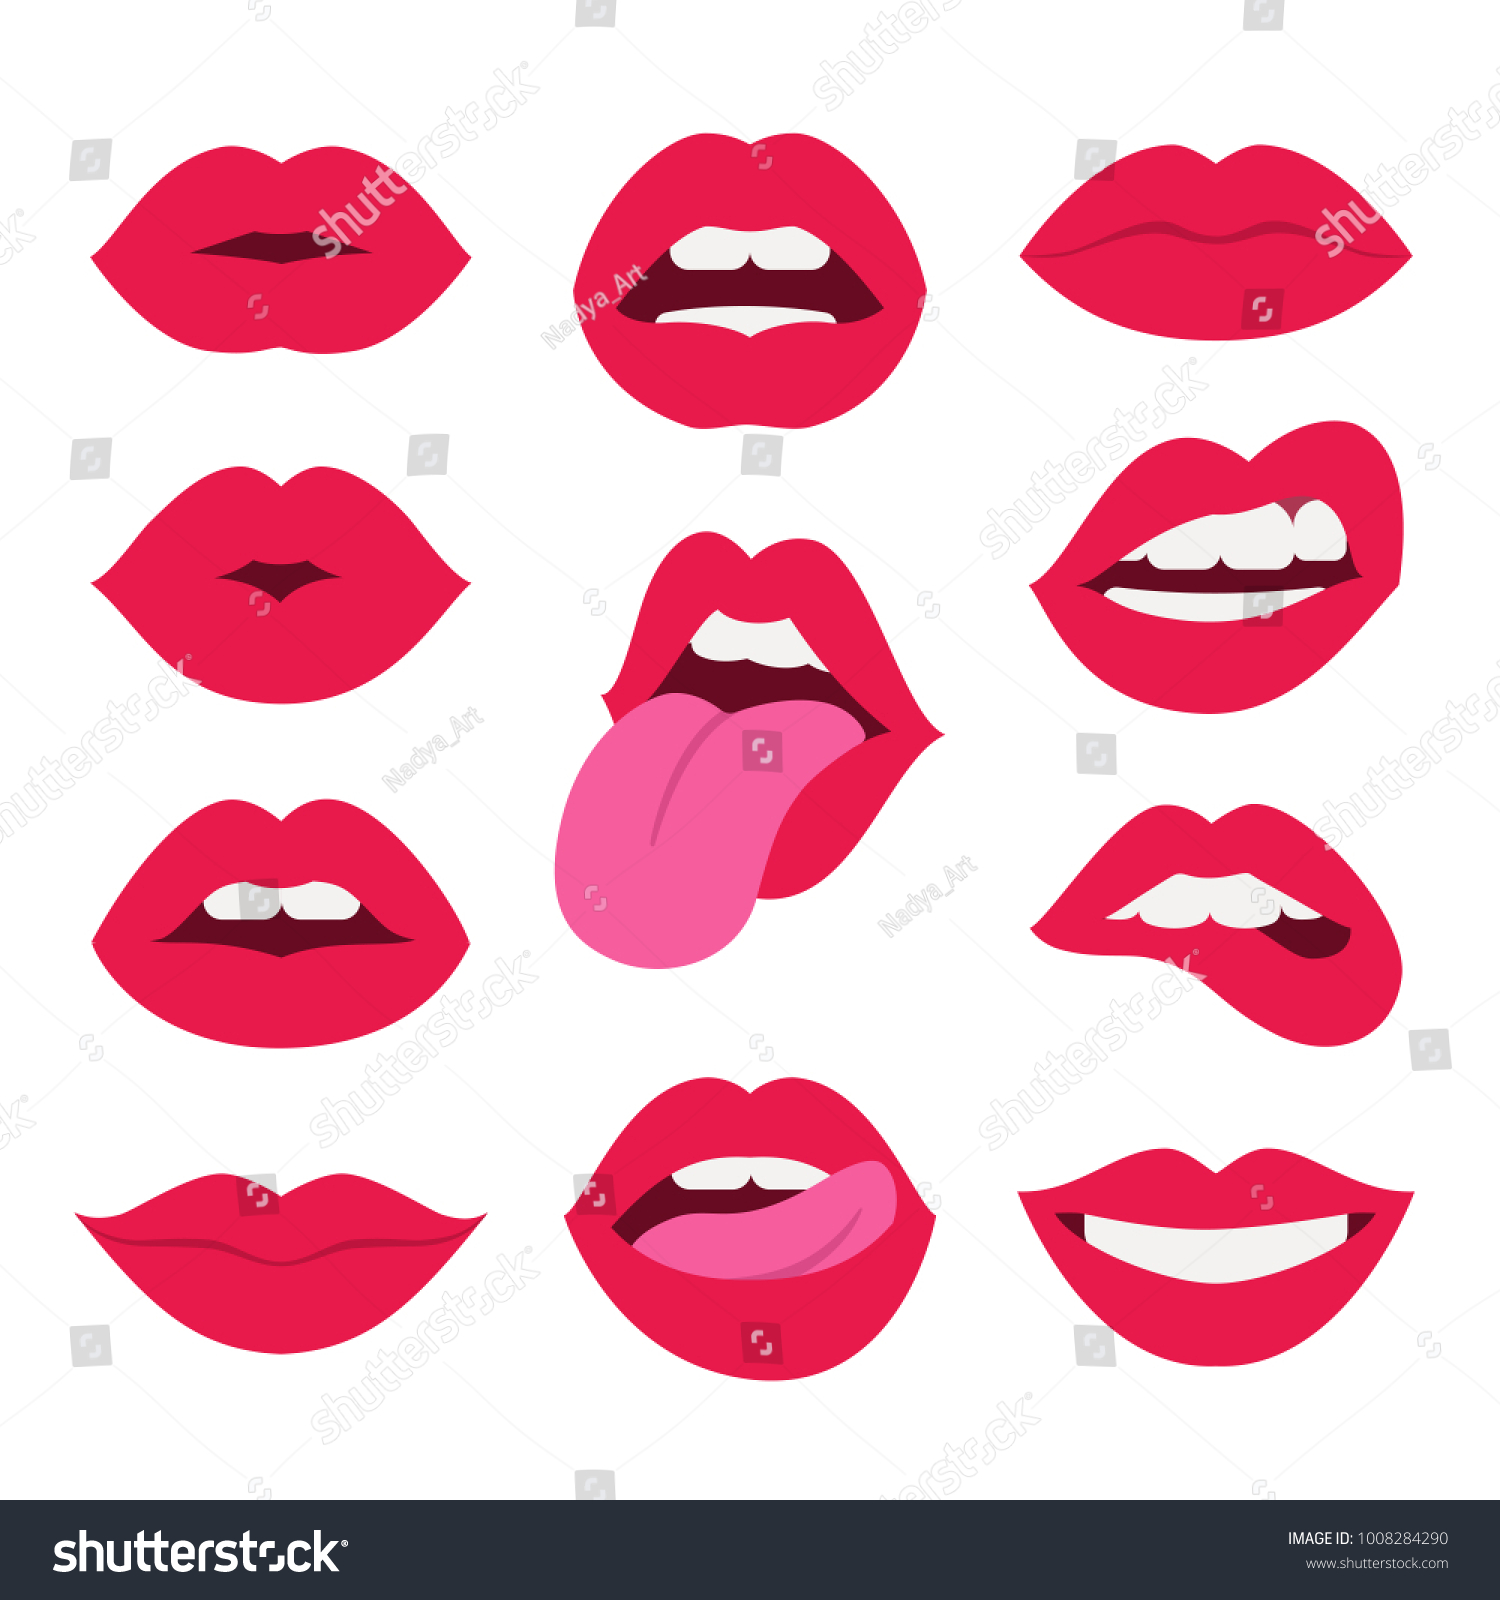 Red lips collection. Vector illustration of sexy woman's flat lips expressing different emotions, such as smile, kiss, half-open mouth, biting lip, lip licking, tongue out. Isolated on white.